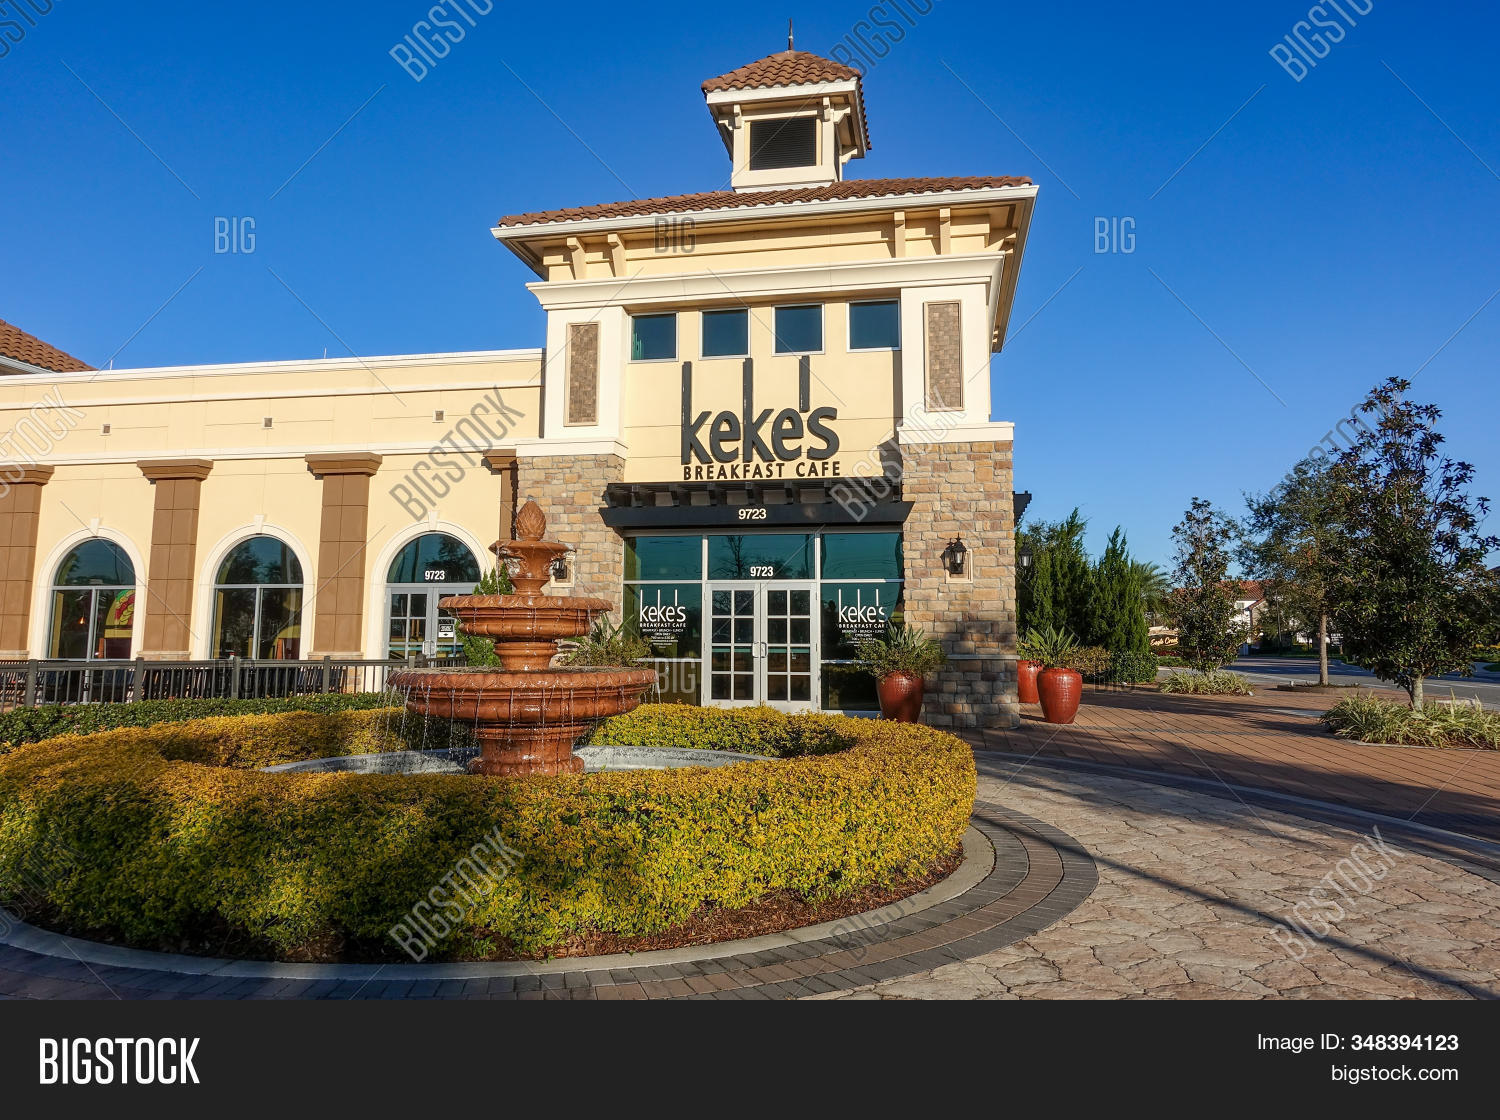 Orlando, Fl/usa-1/29/20: The Exterior Of A Kekes Breakfast Cafe Restaurant In Orlando, Florida Where